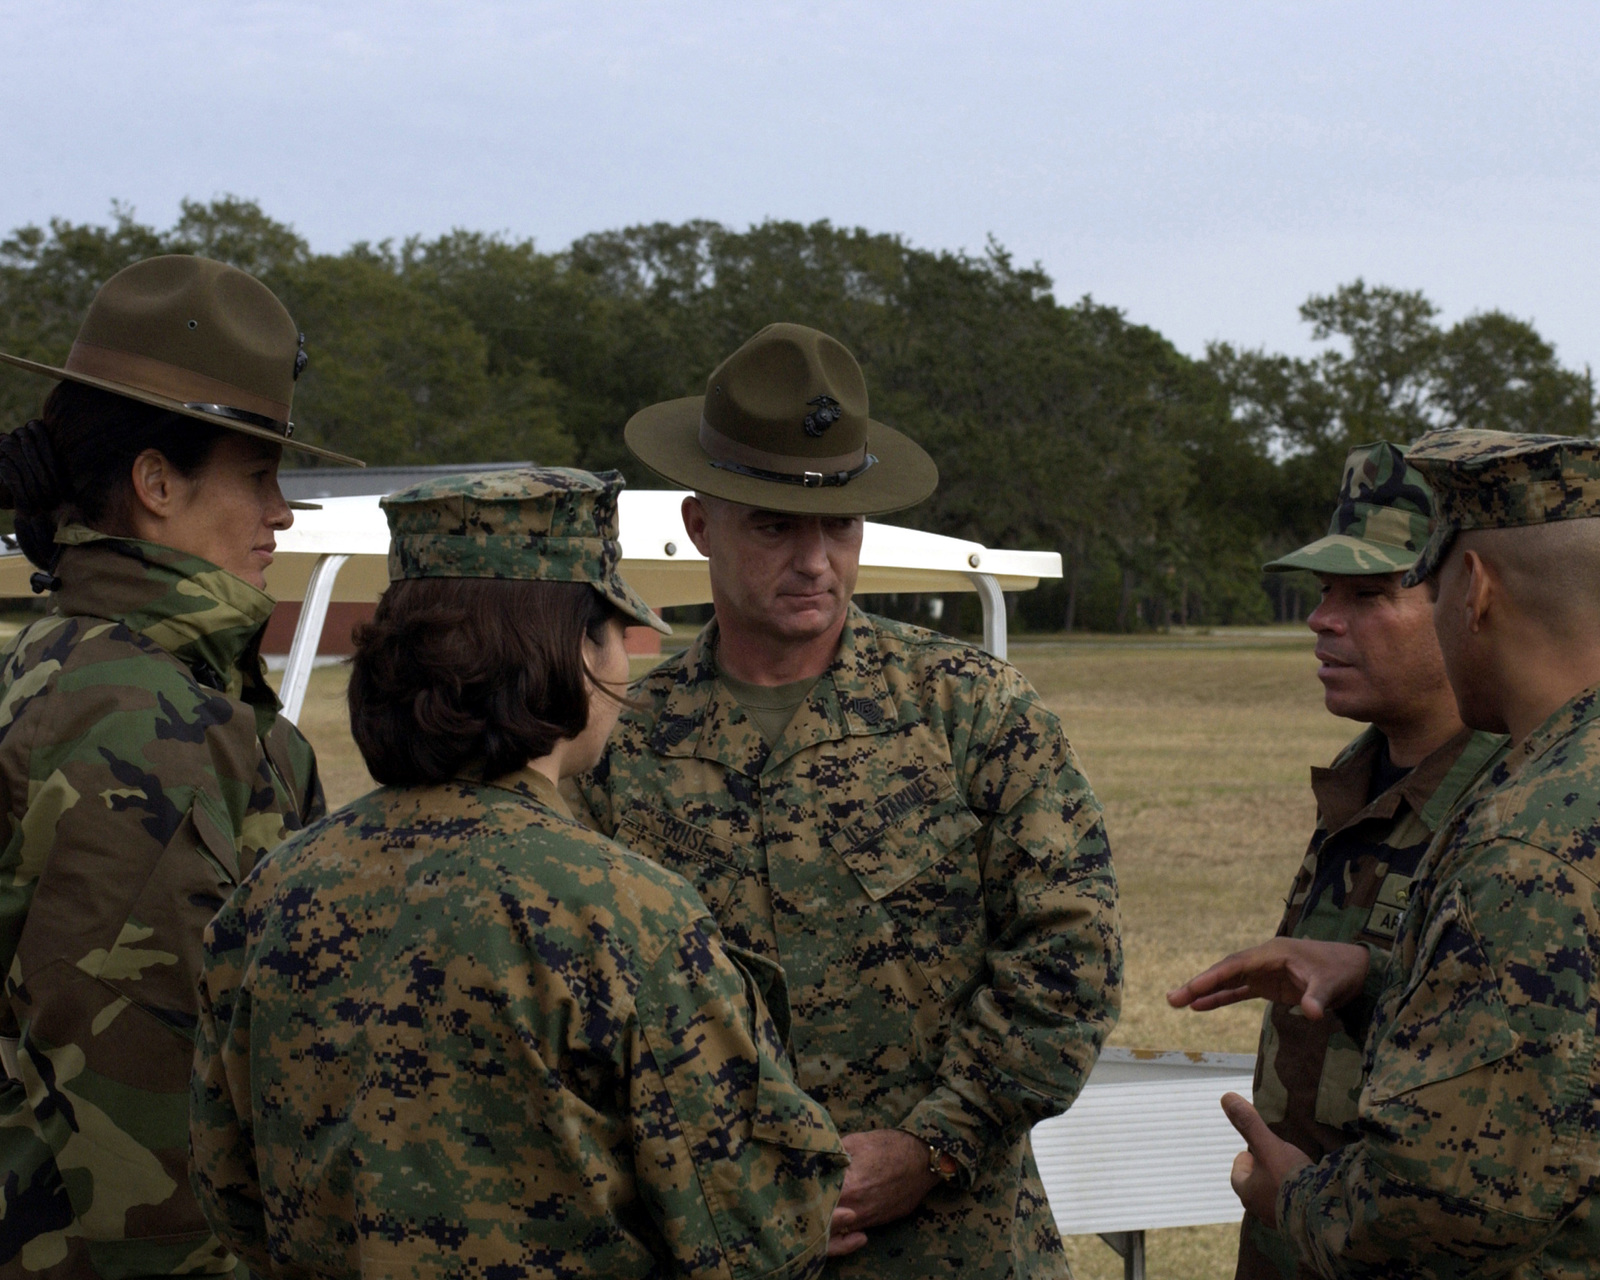 usmc: why not to sleep on post essay Lastly, sleep also makes us look beautiful and energetic when sleep enough, we face will look more cheerful and eager to do chores face more beautiful, nothing dull in the face practice good sleep is to sleep for a while in the afternoon will be able to restore your energy to continue working in good.